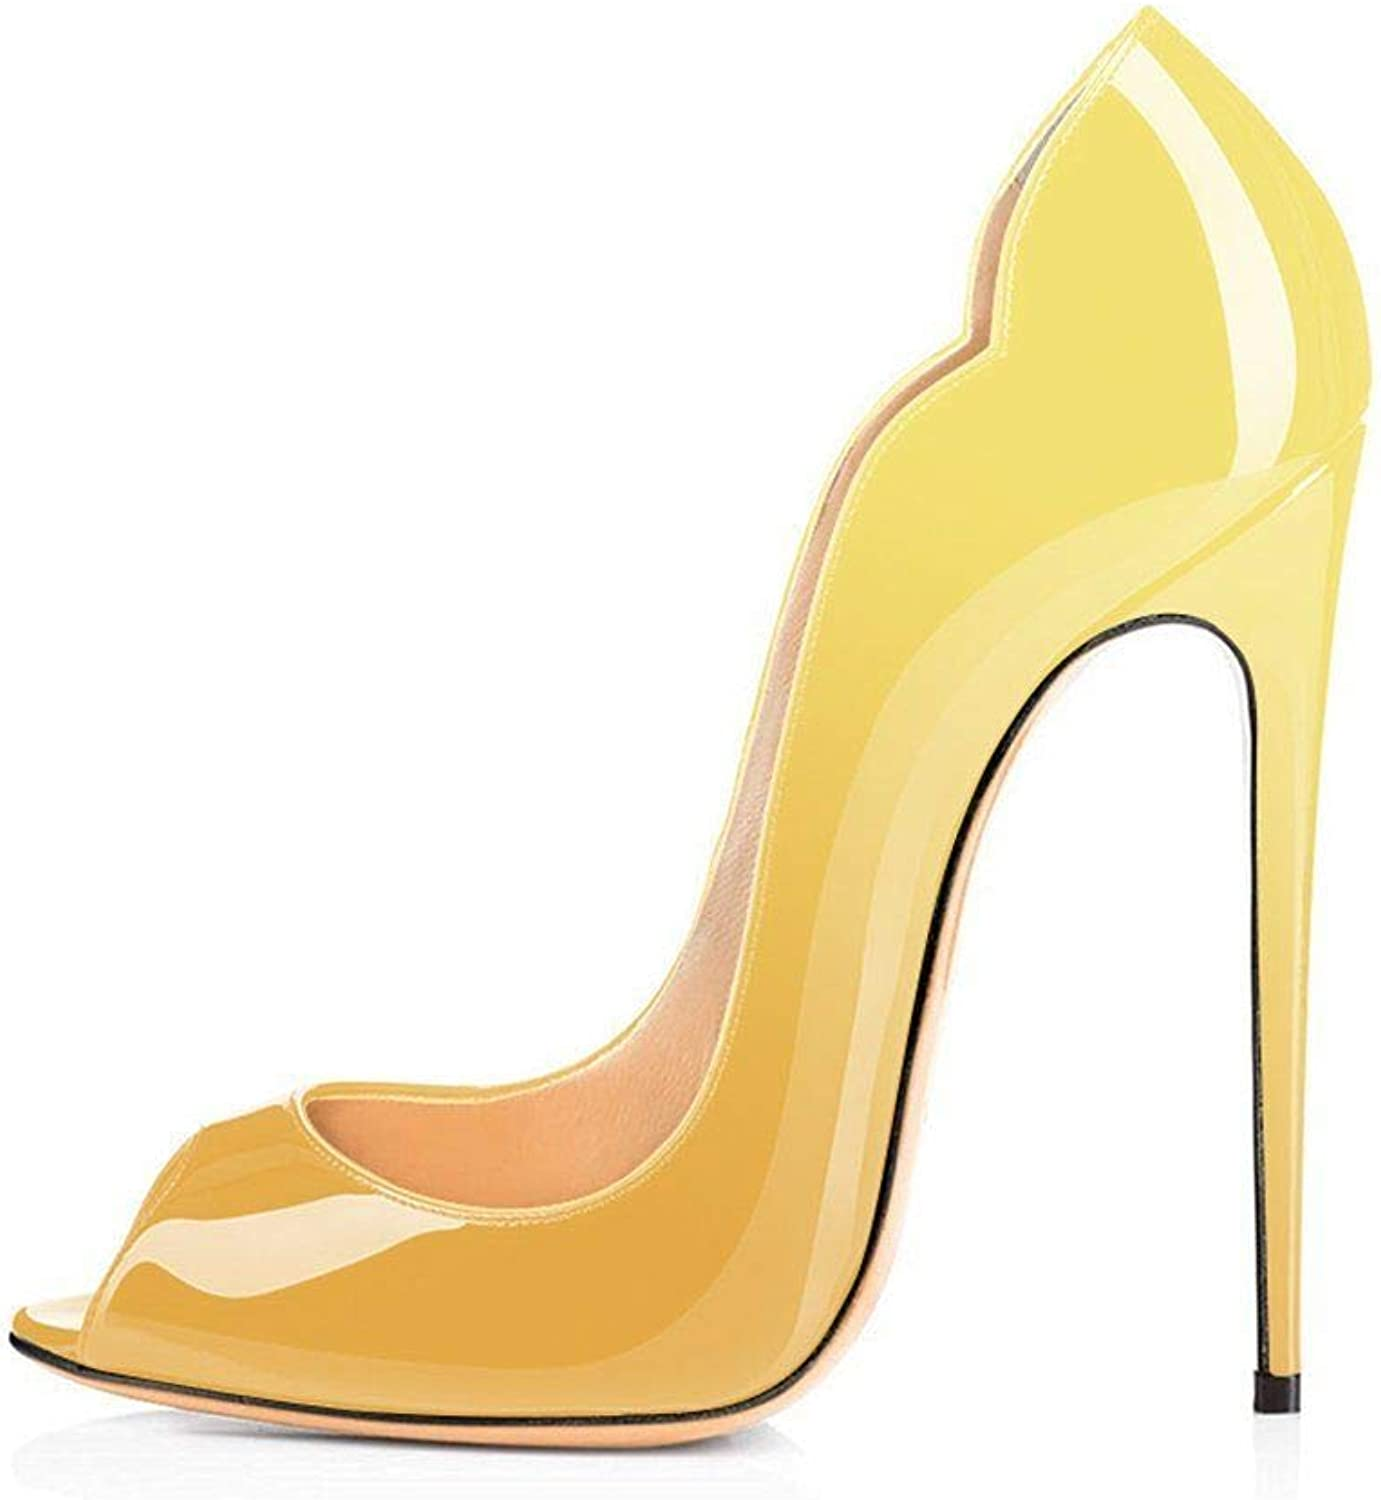 Heels Addict's Women's shoes Peep Toe Wave Shaped Stiletto High Heel Pumps